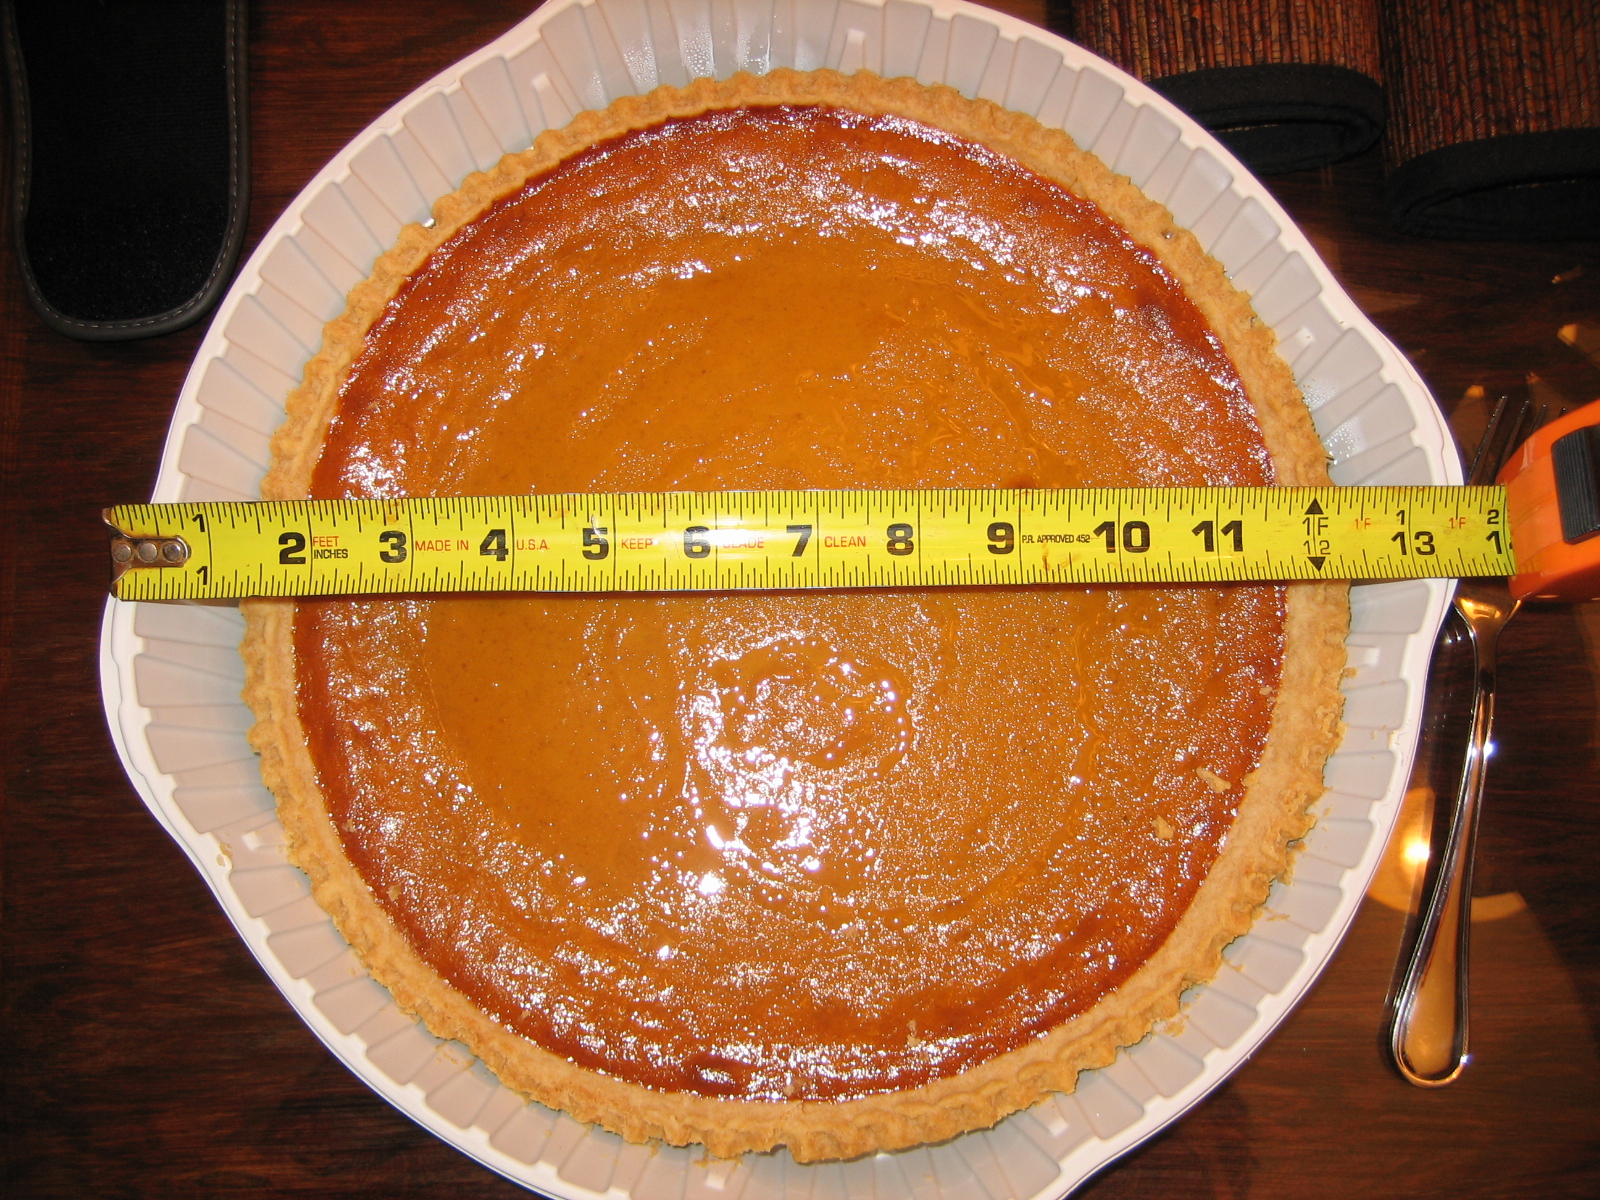 pie measure.jpg